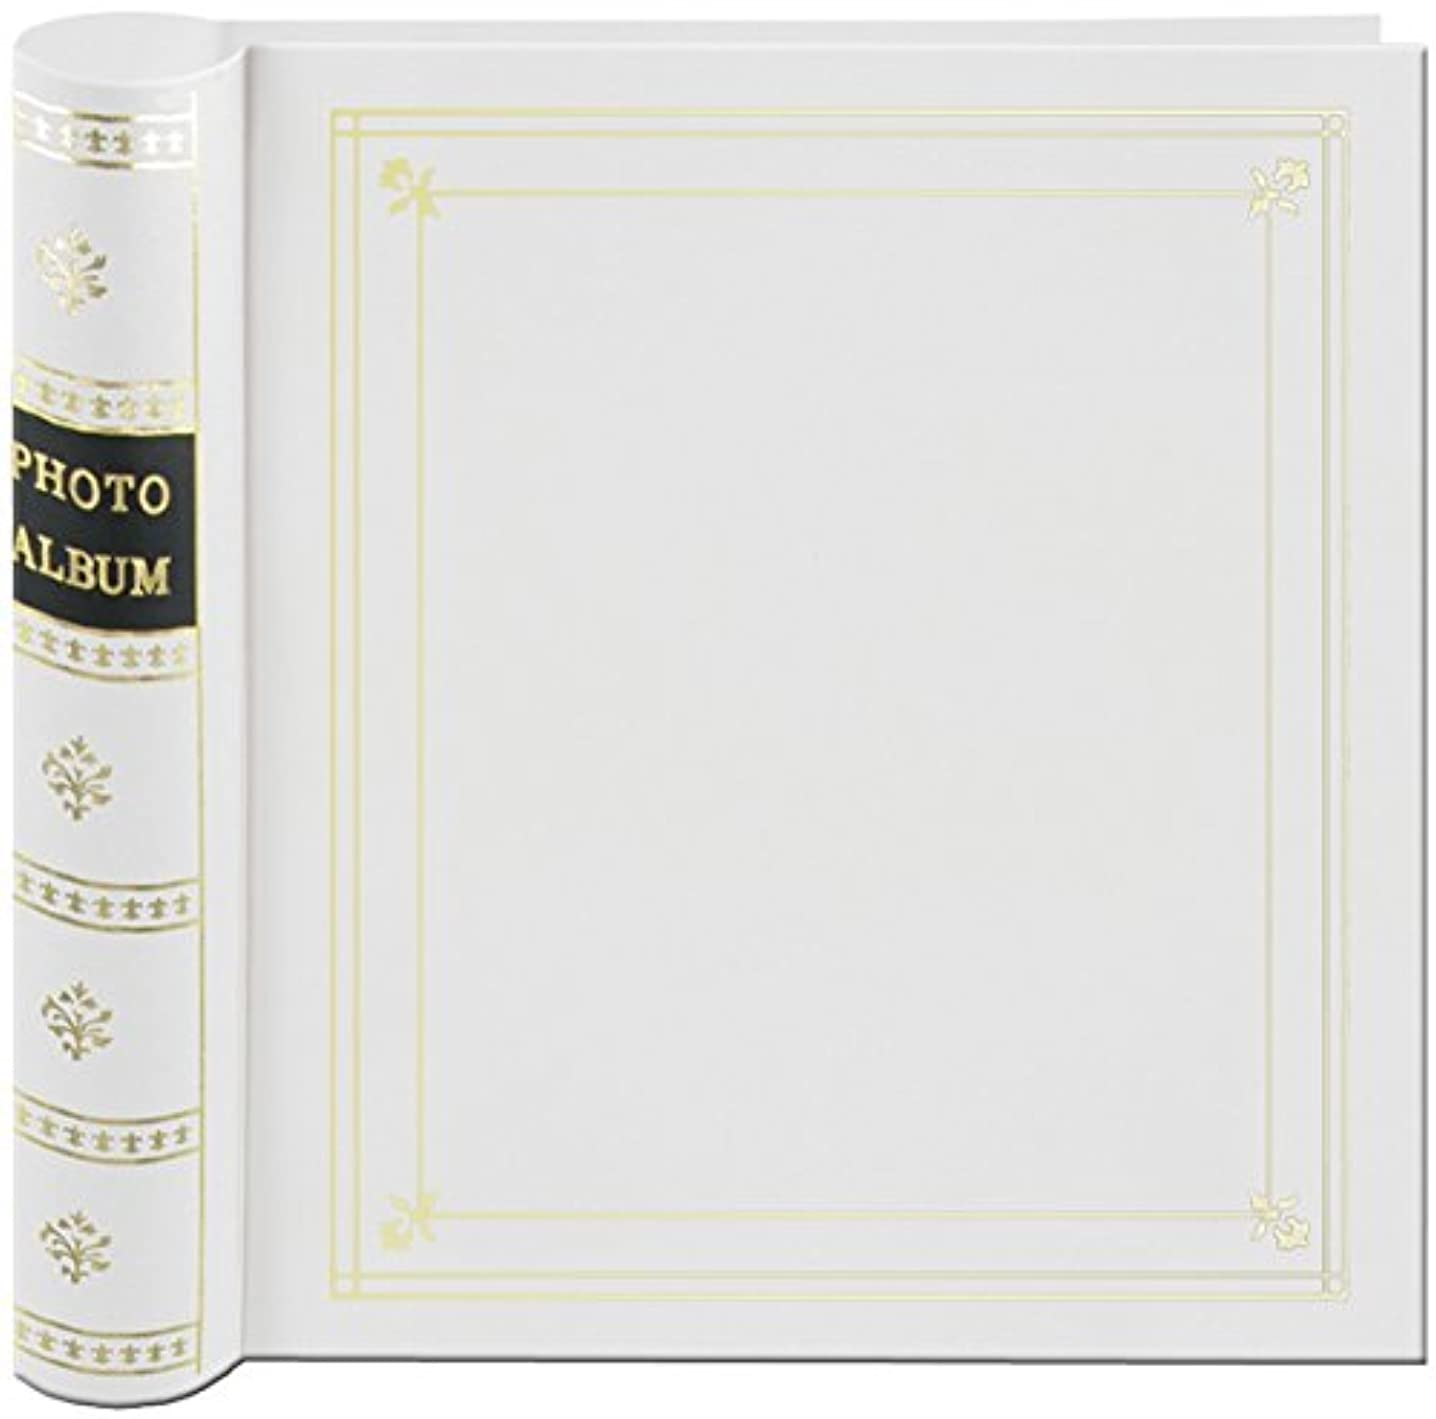 Pioneer Photo 200-Pocket Coil Bound Cover Photo Album for 4 by 6-Inch Prints, White Leatherette with Gold Accents